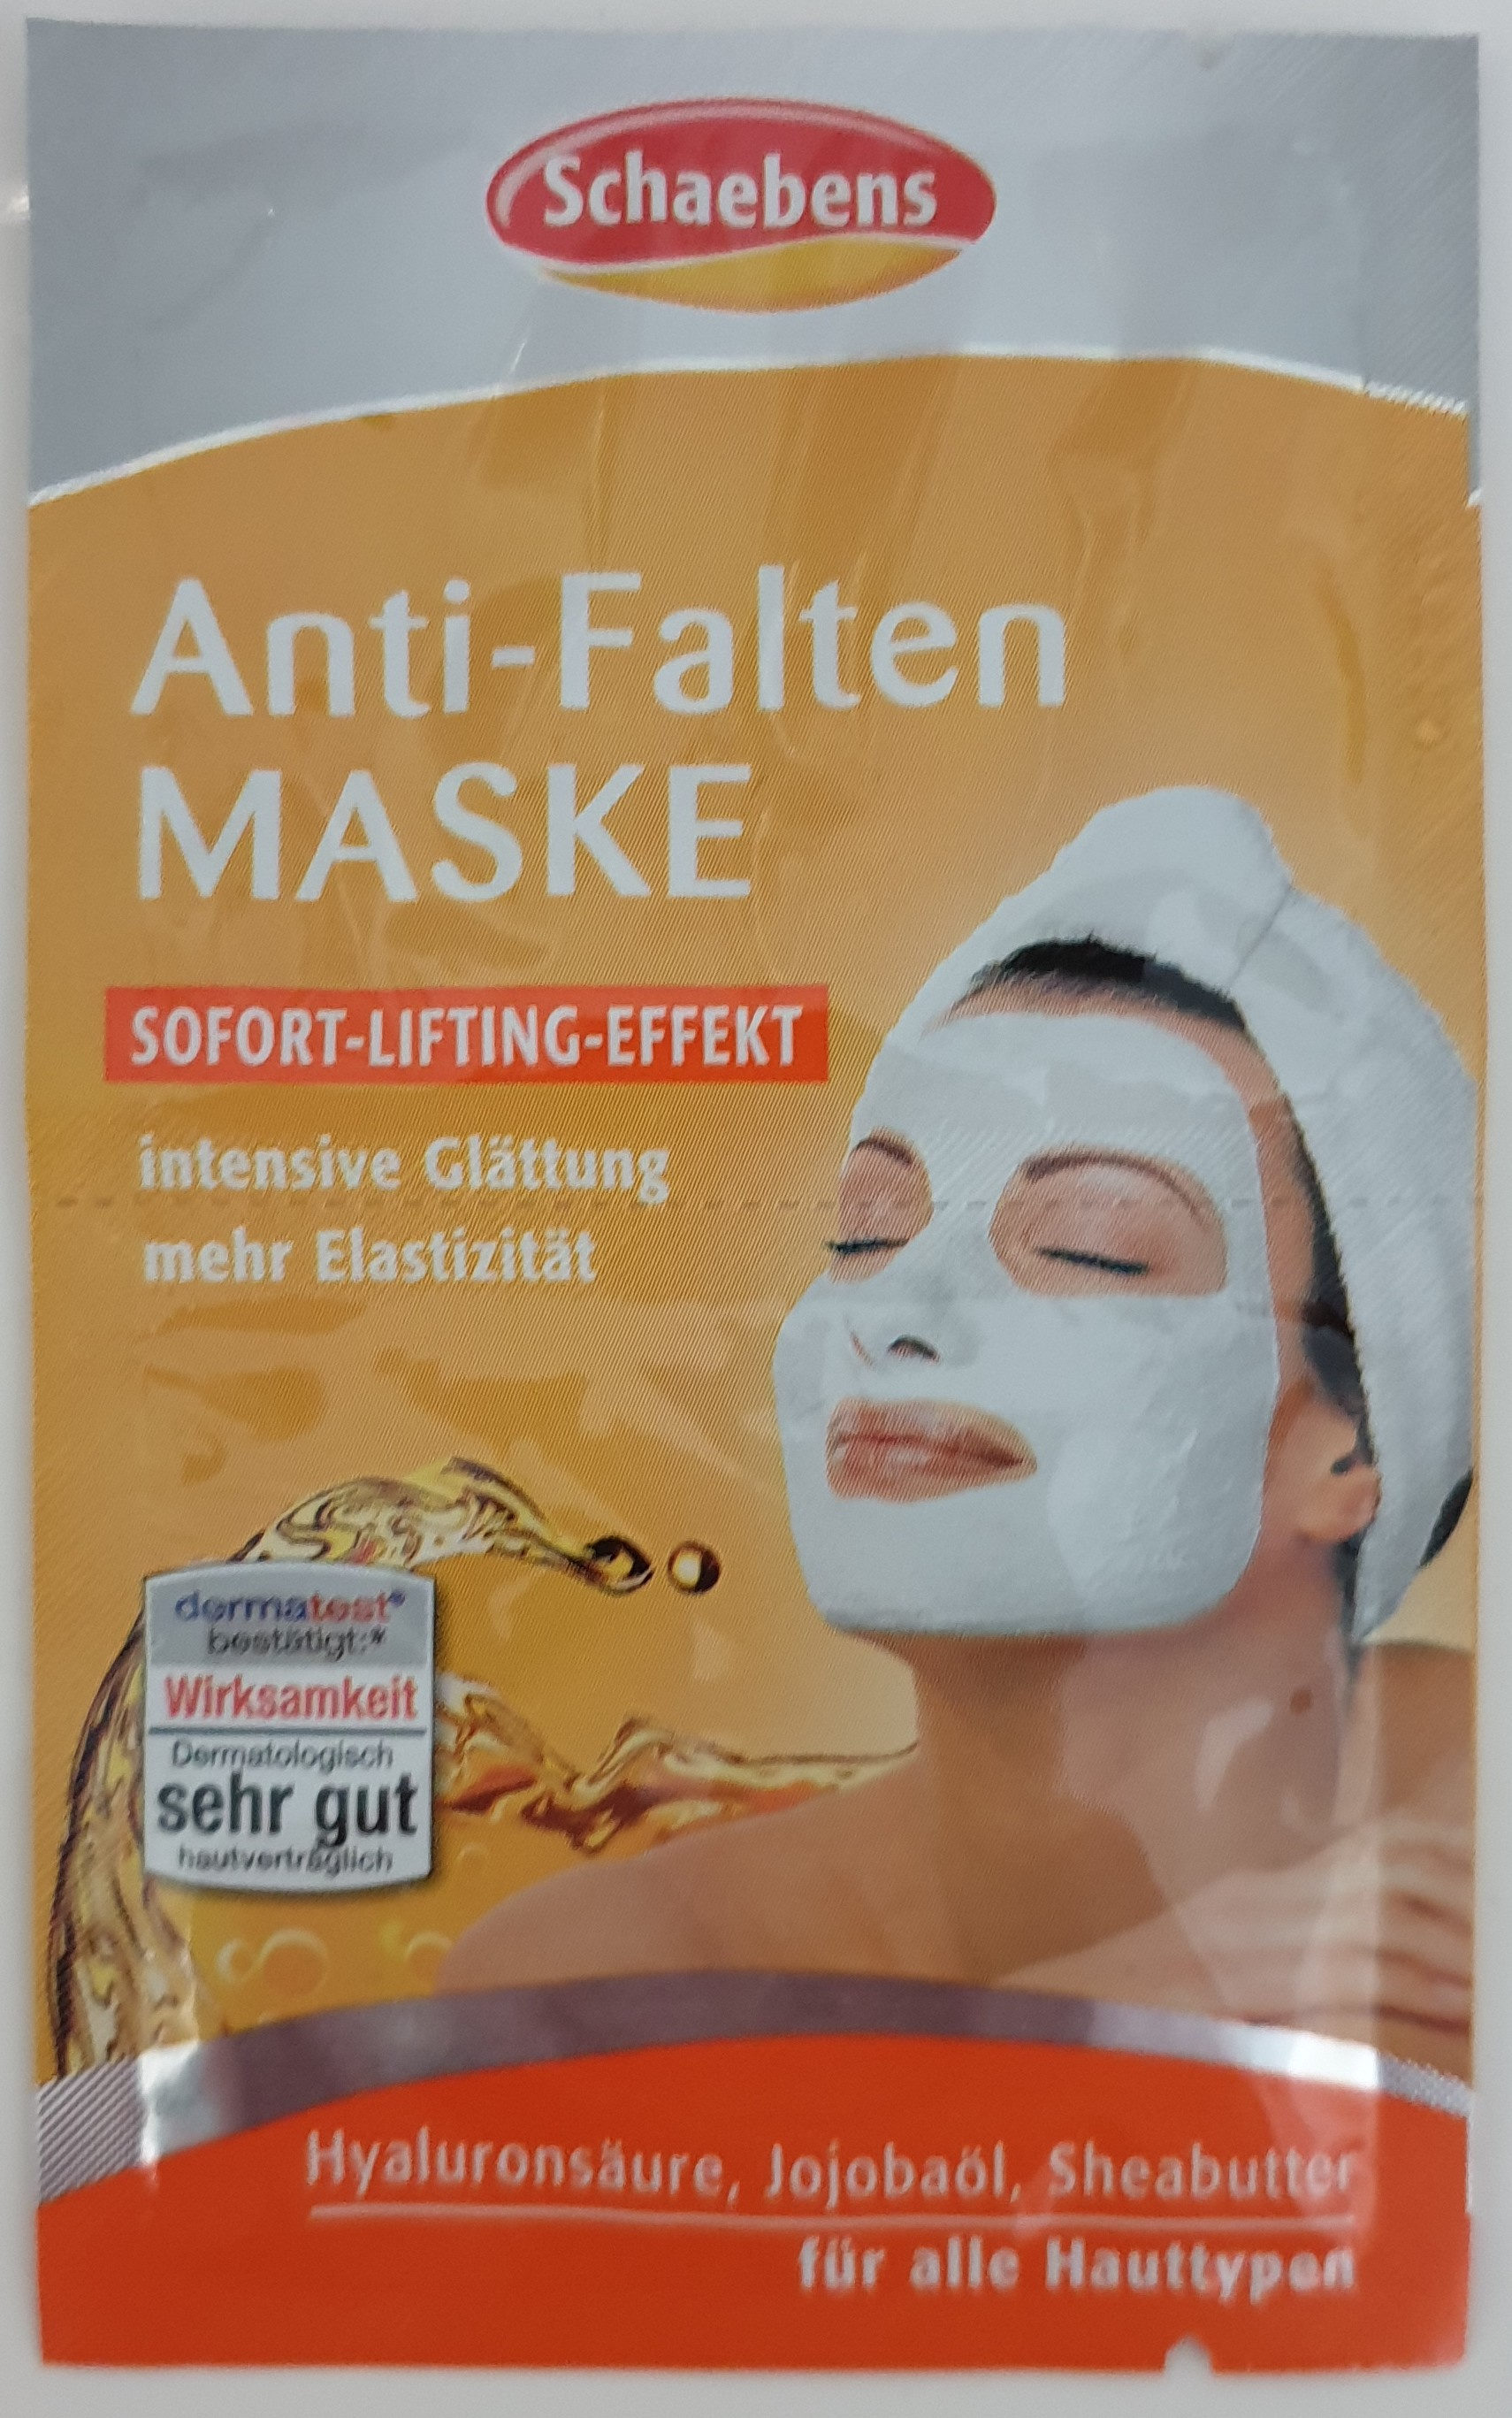 Anti-Falten Maske - Product - de